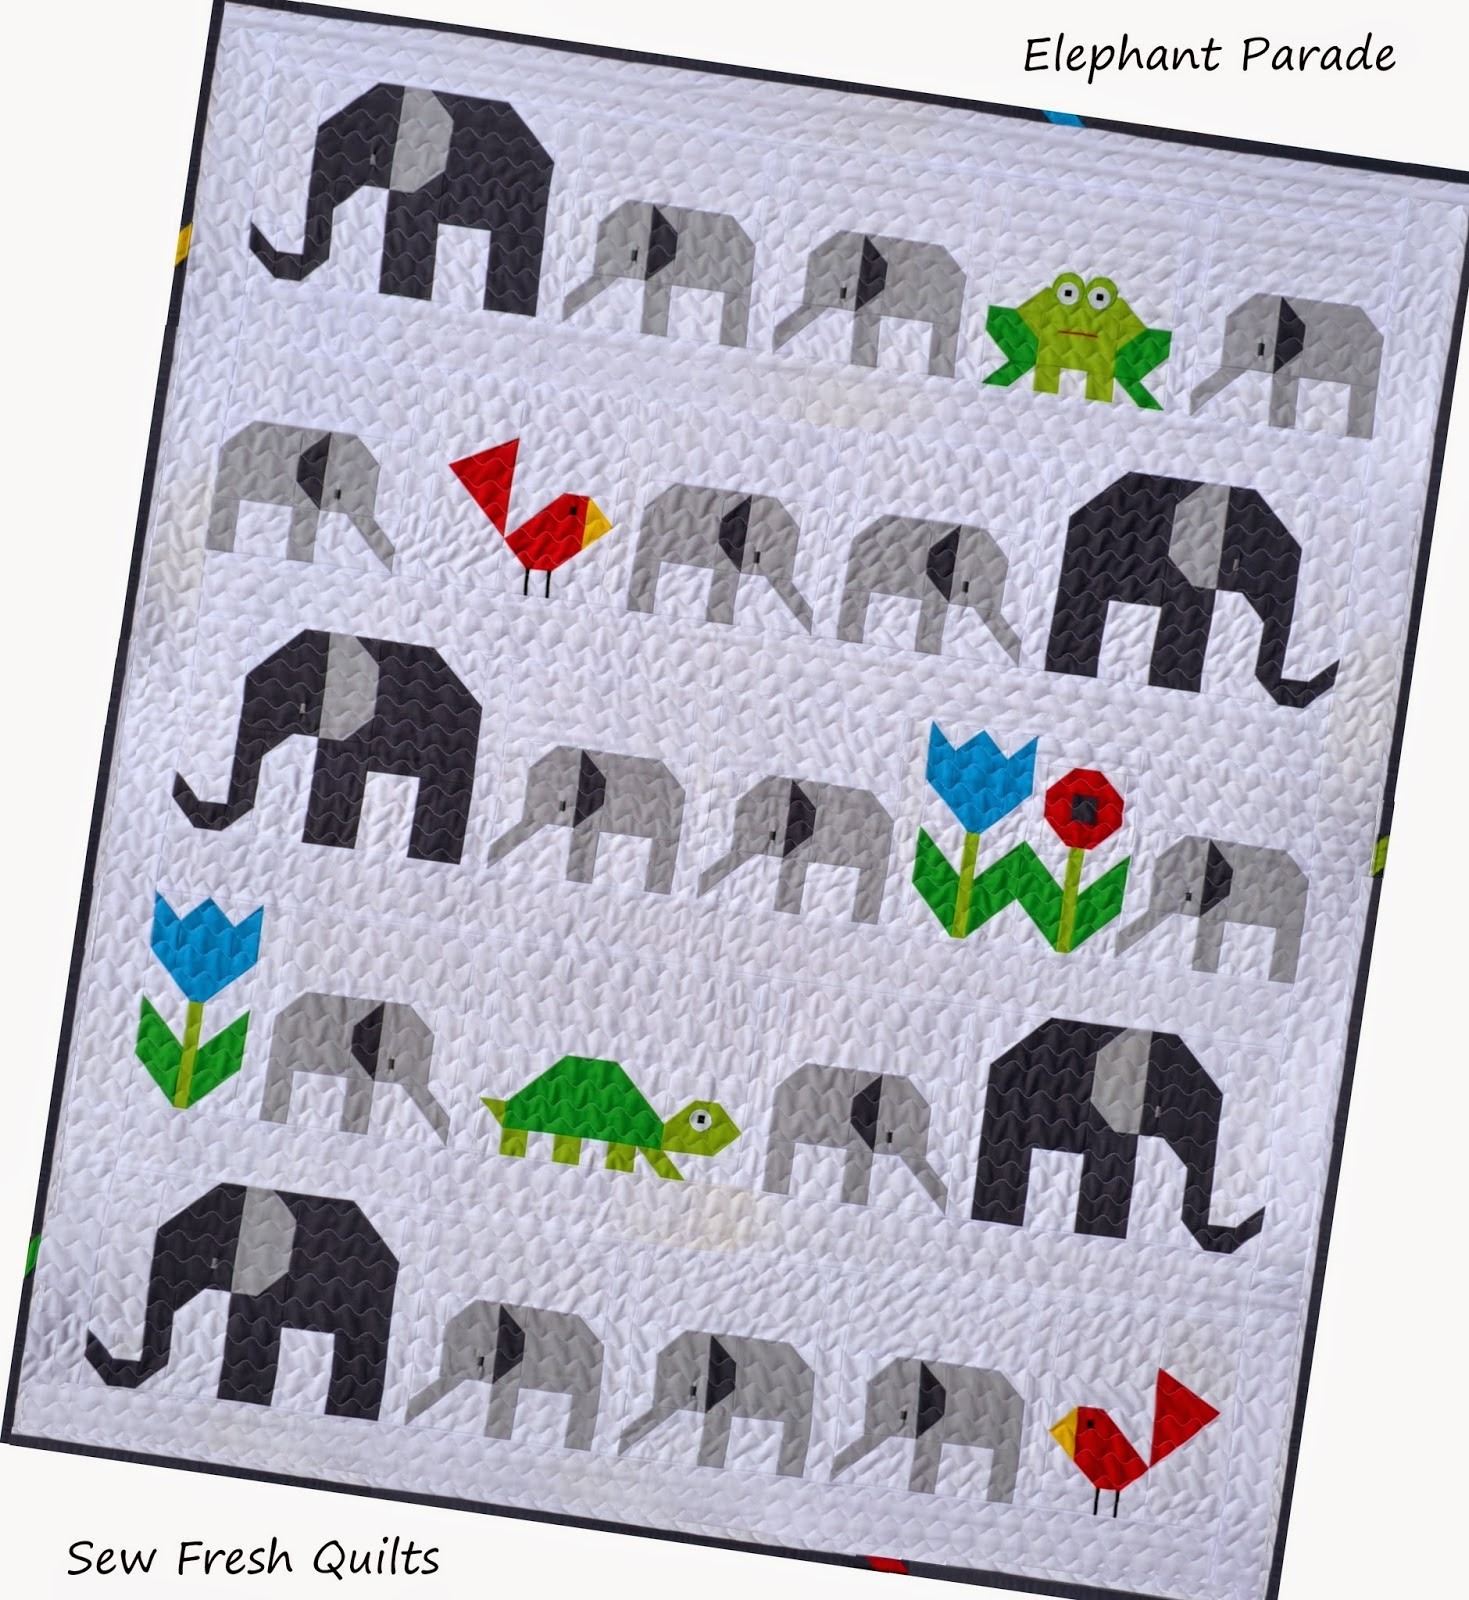 https://sewfreshquilts.blogspot.ca/2015/01/elephant-parade.html